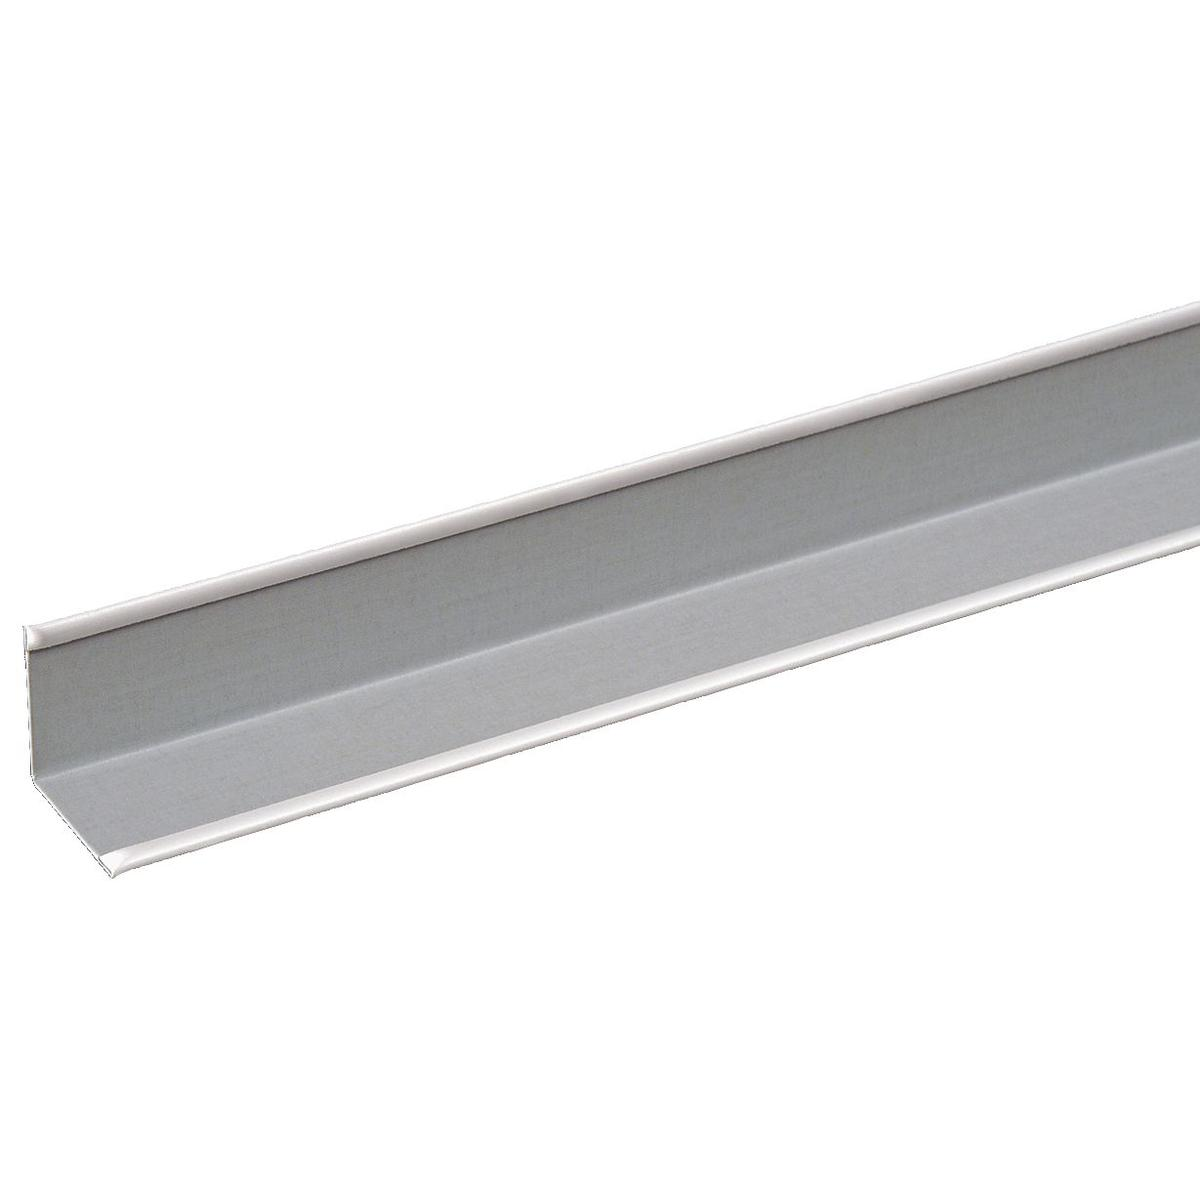 General purpose ceiling tile 80 sq ft coverage gamut dailygadgetfo Images